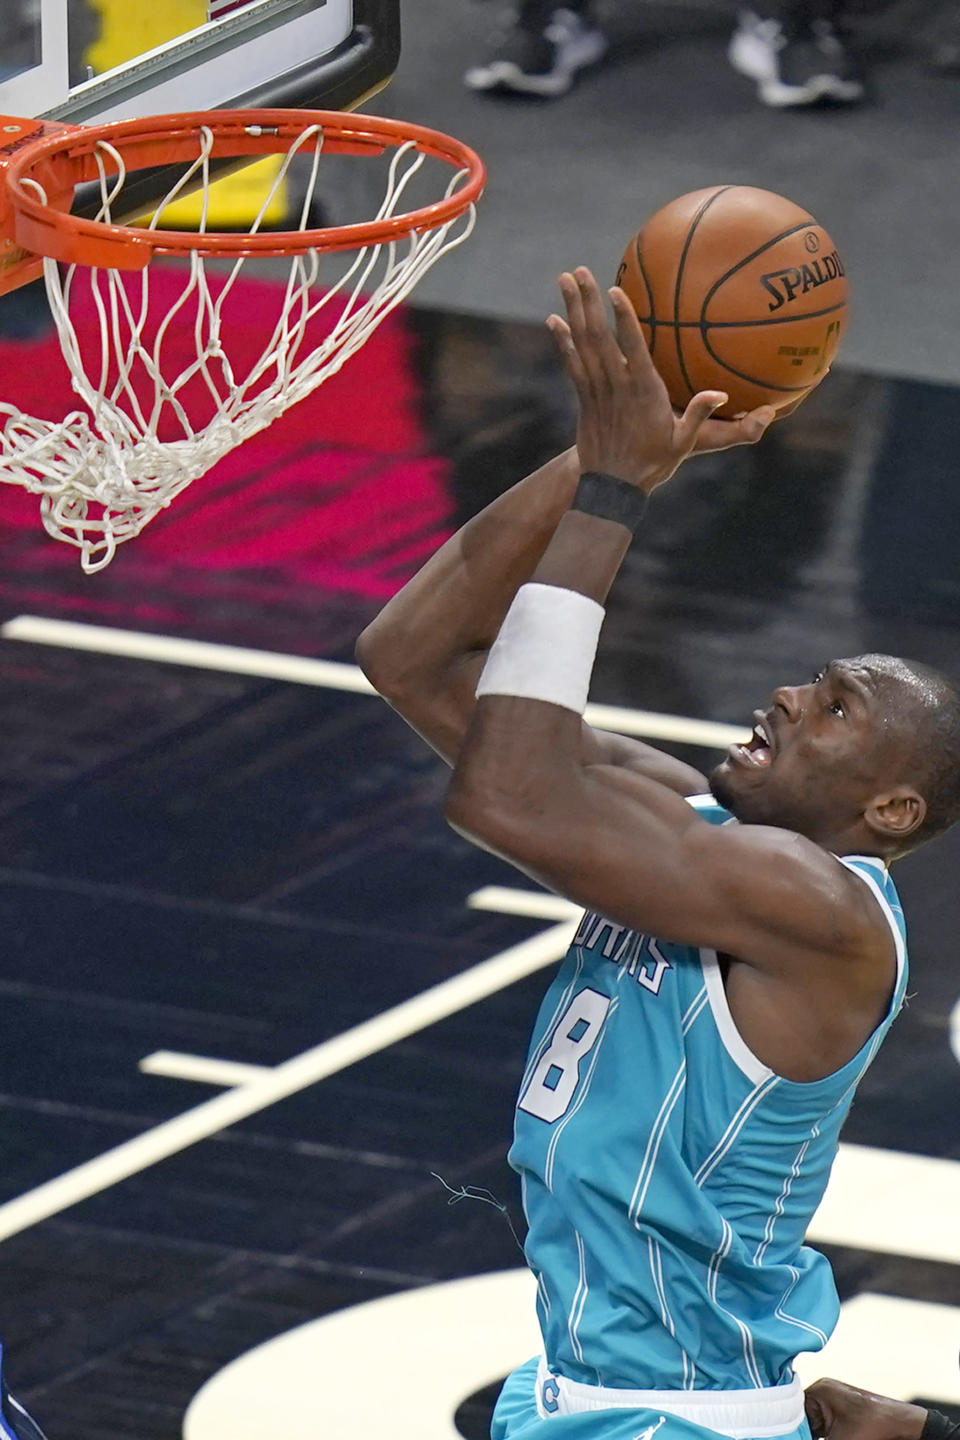 Charlotte Hornets center Bismack Biyombo takes a shot against the Orlando Magic during the second half of an NBA basketball game, Monday, Jan. 25, 2021, in Orlando, Fla. (AP Photo/John Raoux)